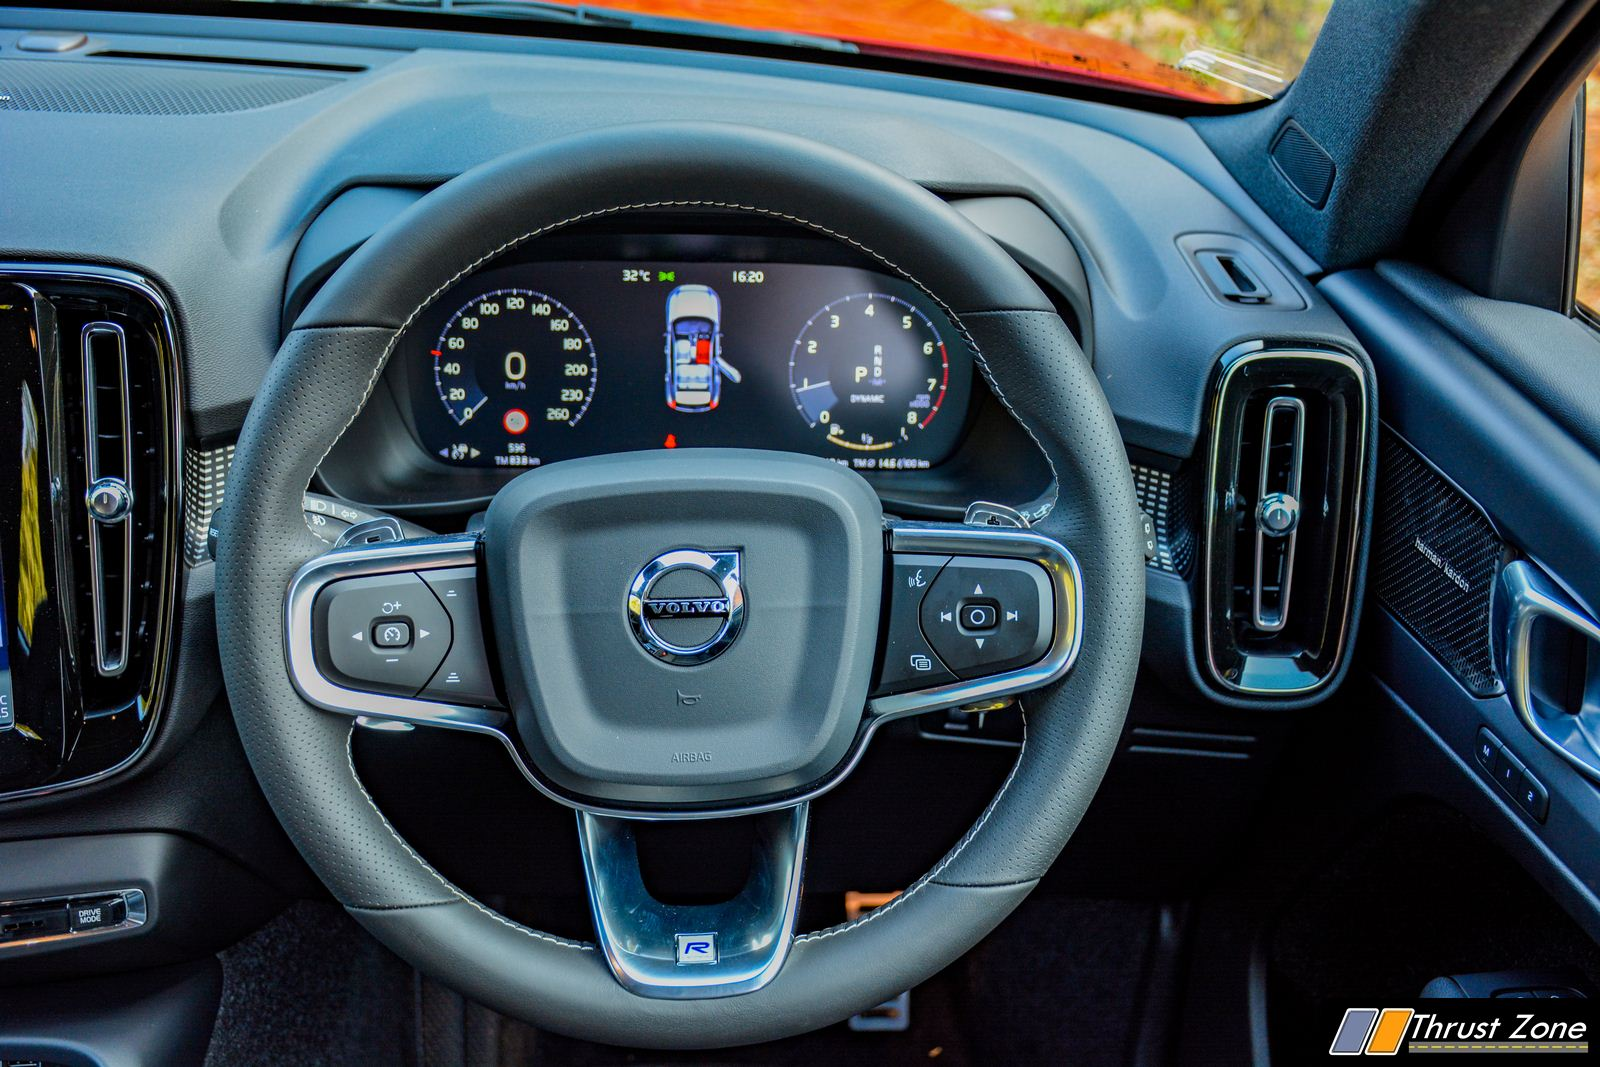 2020-volvo-xc40-petrol-india-review-14